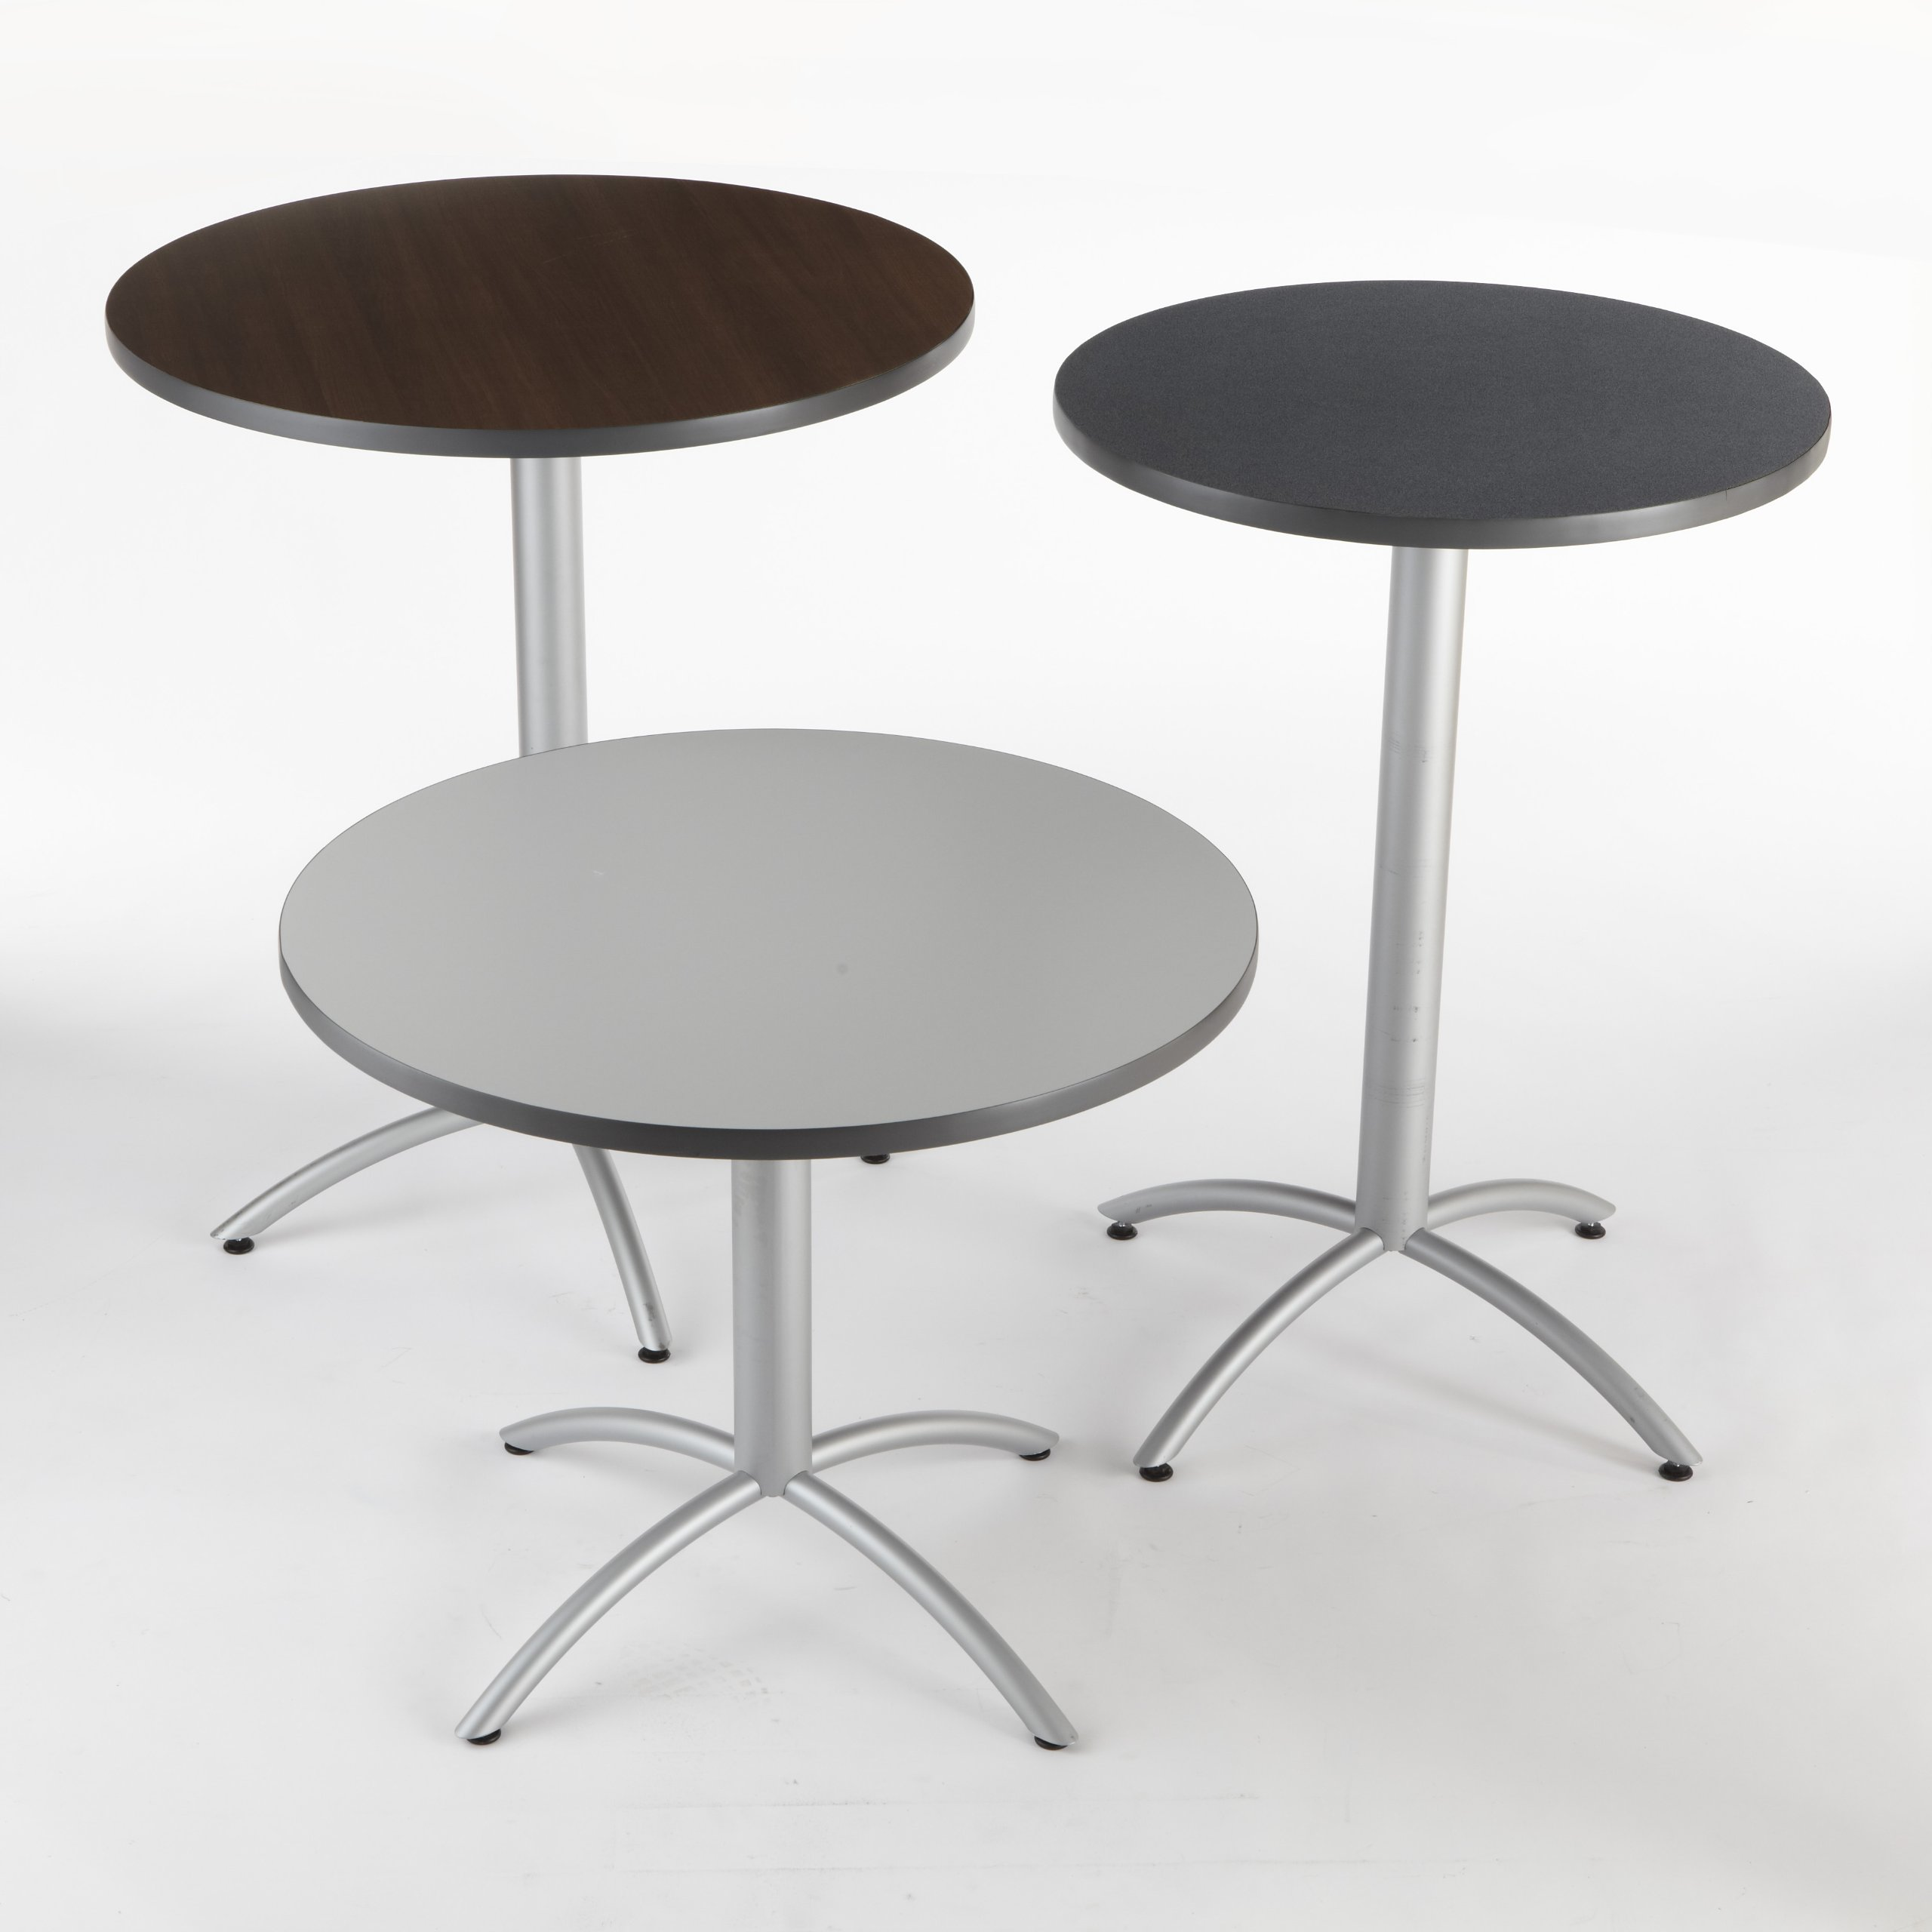 Iceberg ICE65668 CafeWorks Round Bistro Table with Powder-Coated Steel Base, 36'' Diameter x 42'' Height, Graphite Granite